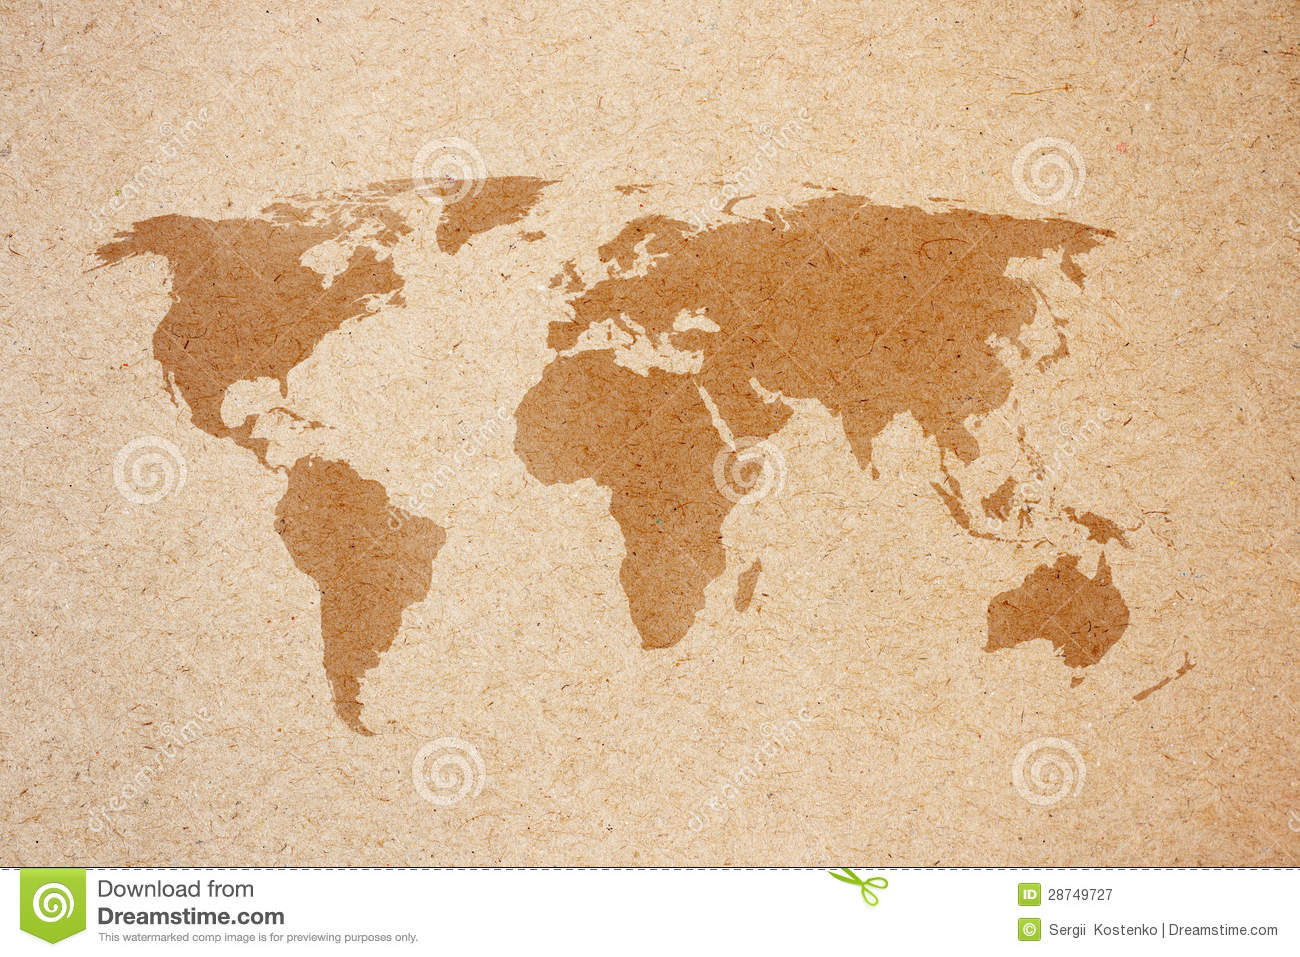 World map on natural brown recycled paper stock image image of world map on natural brown recycled paper gumiabroncs Gallery